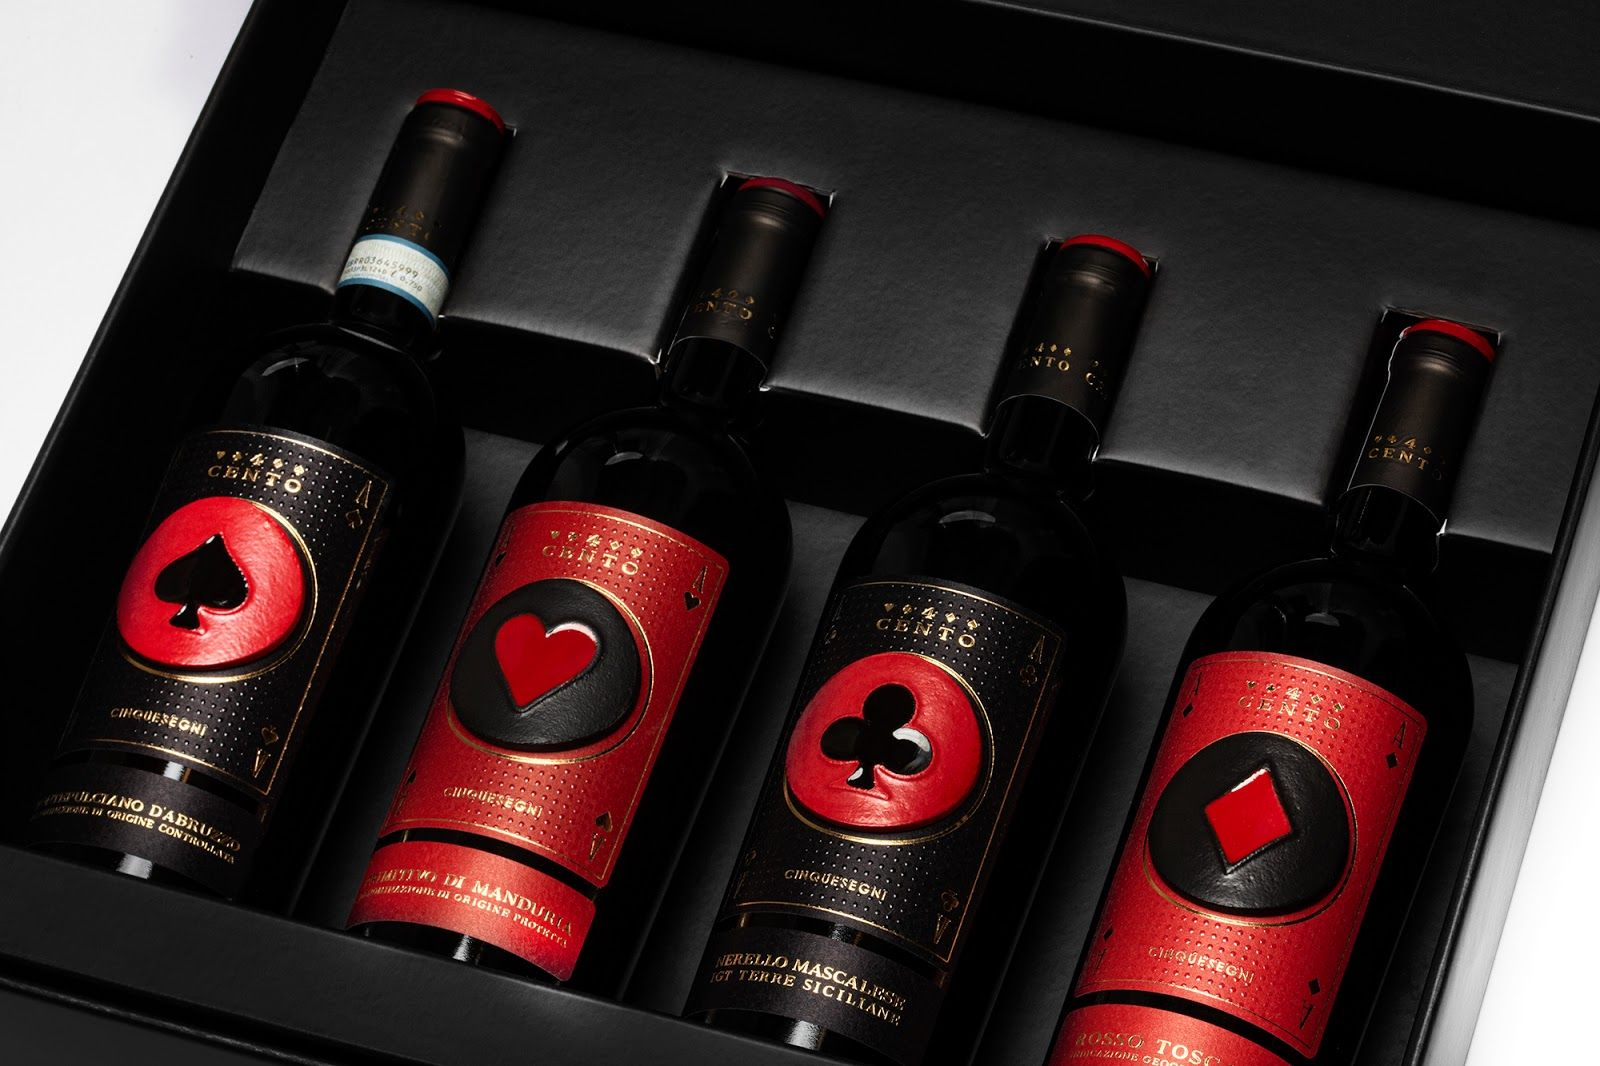 4cento In 2020 Wine Packaging Design Creative Packaging Design Wine Packaging